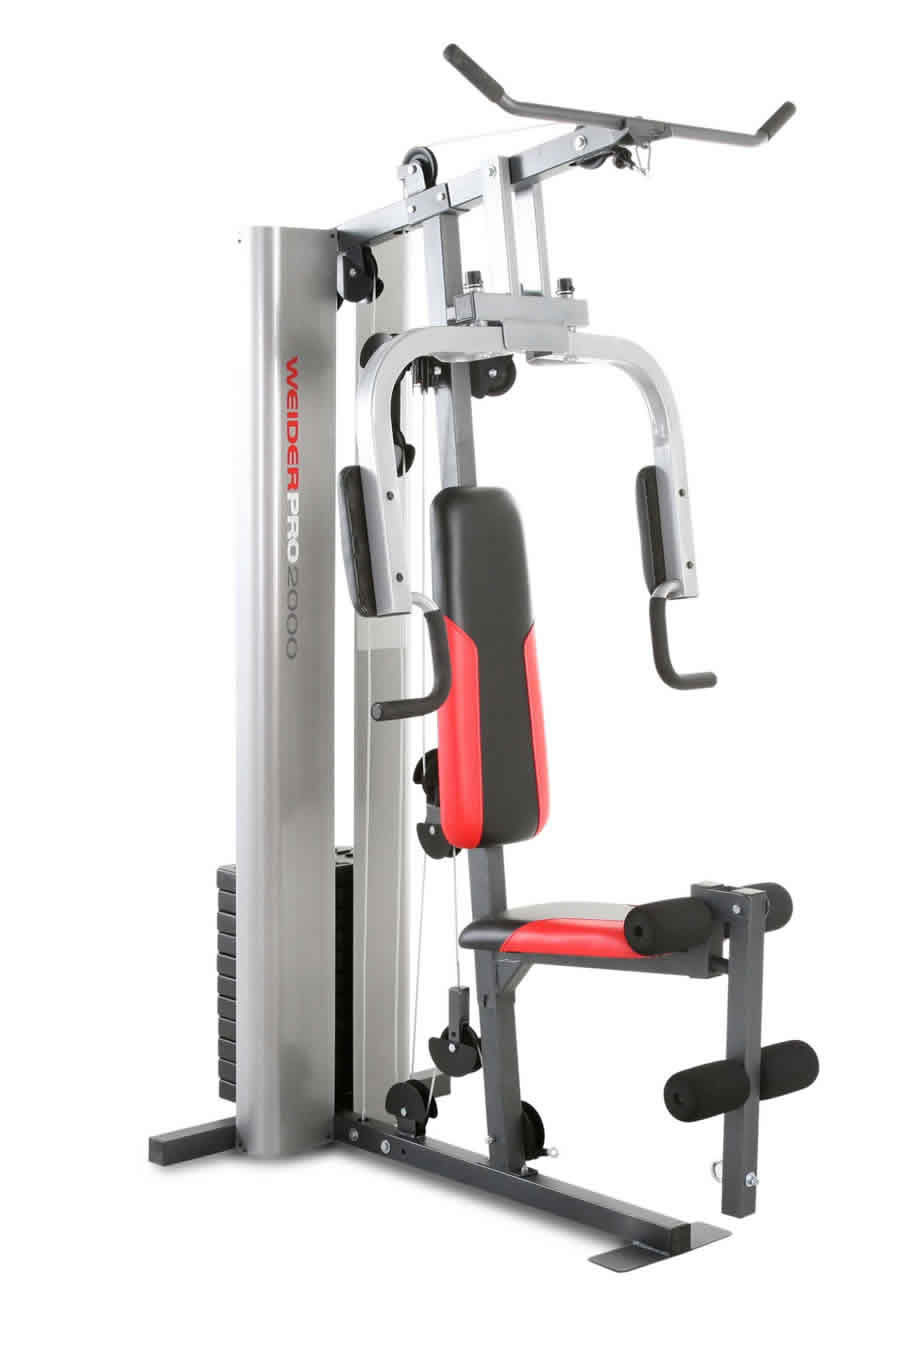 Stazione Butterfly / Leg Developer / Arm Press / high Pulley Lat tower con barra / Low Pulley - PRO 2000